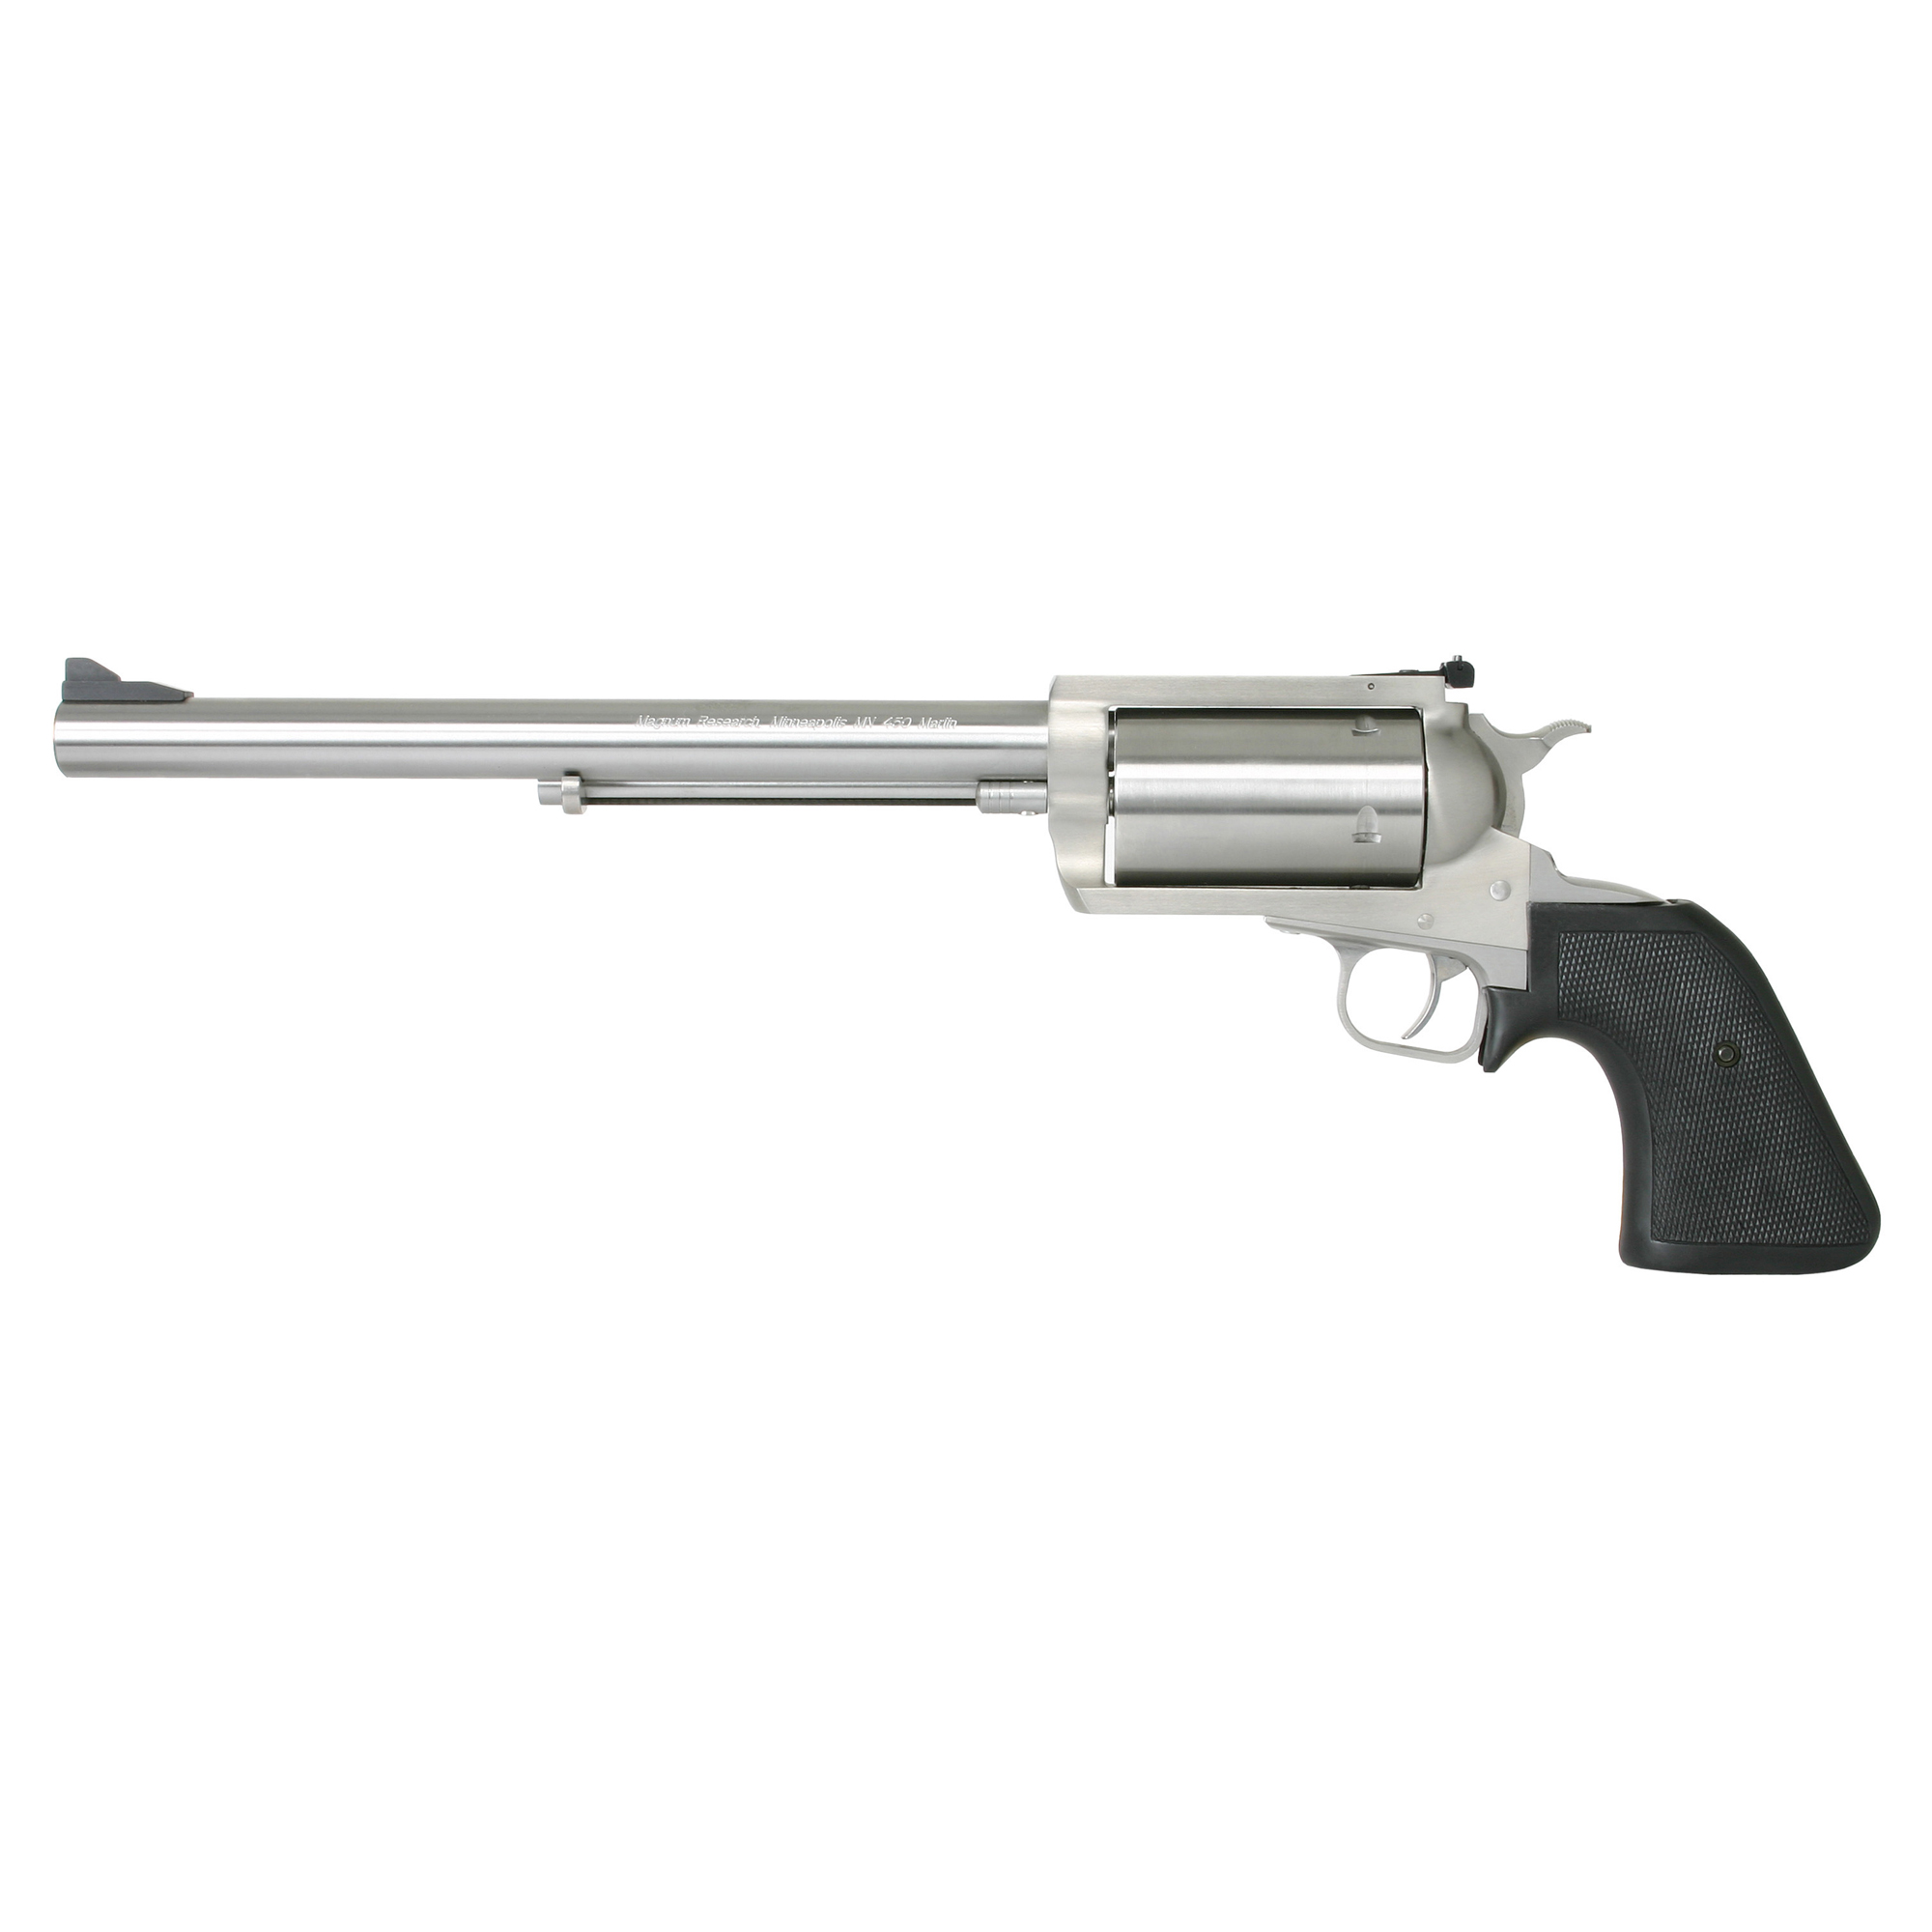 """Magnum Research's Biggest Finest Revolver is truly the biggest"""" finest revolver on the market today. Entirely manufactured in the US and like the legendary Desert Eagle pistol it is designed as a magnum from the ground up. The BFR is all stainless and has a precision grade barrel that delivers unmatched accuracy with lead or jacketed bullets. The BFR is the most powerful production single action gun made and with 10 calibers and two frame sizes to choose from you can take everything from grouse to grizzly."""